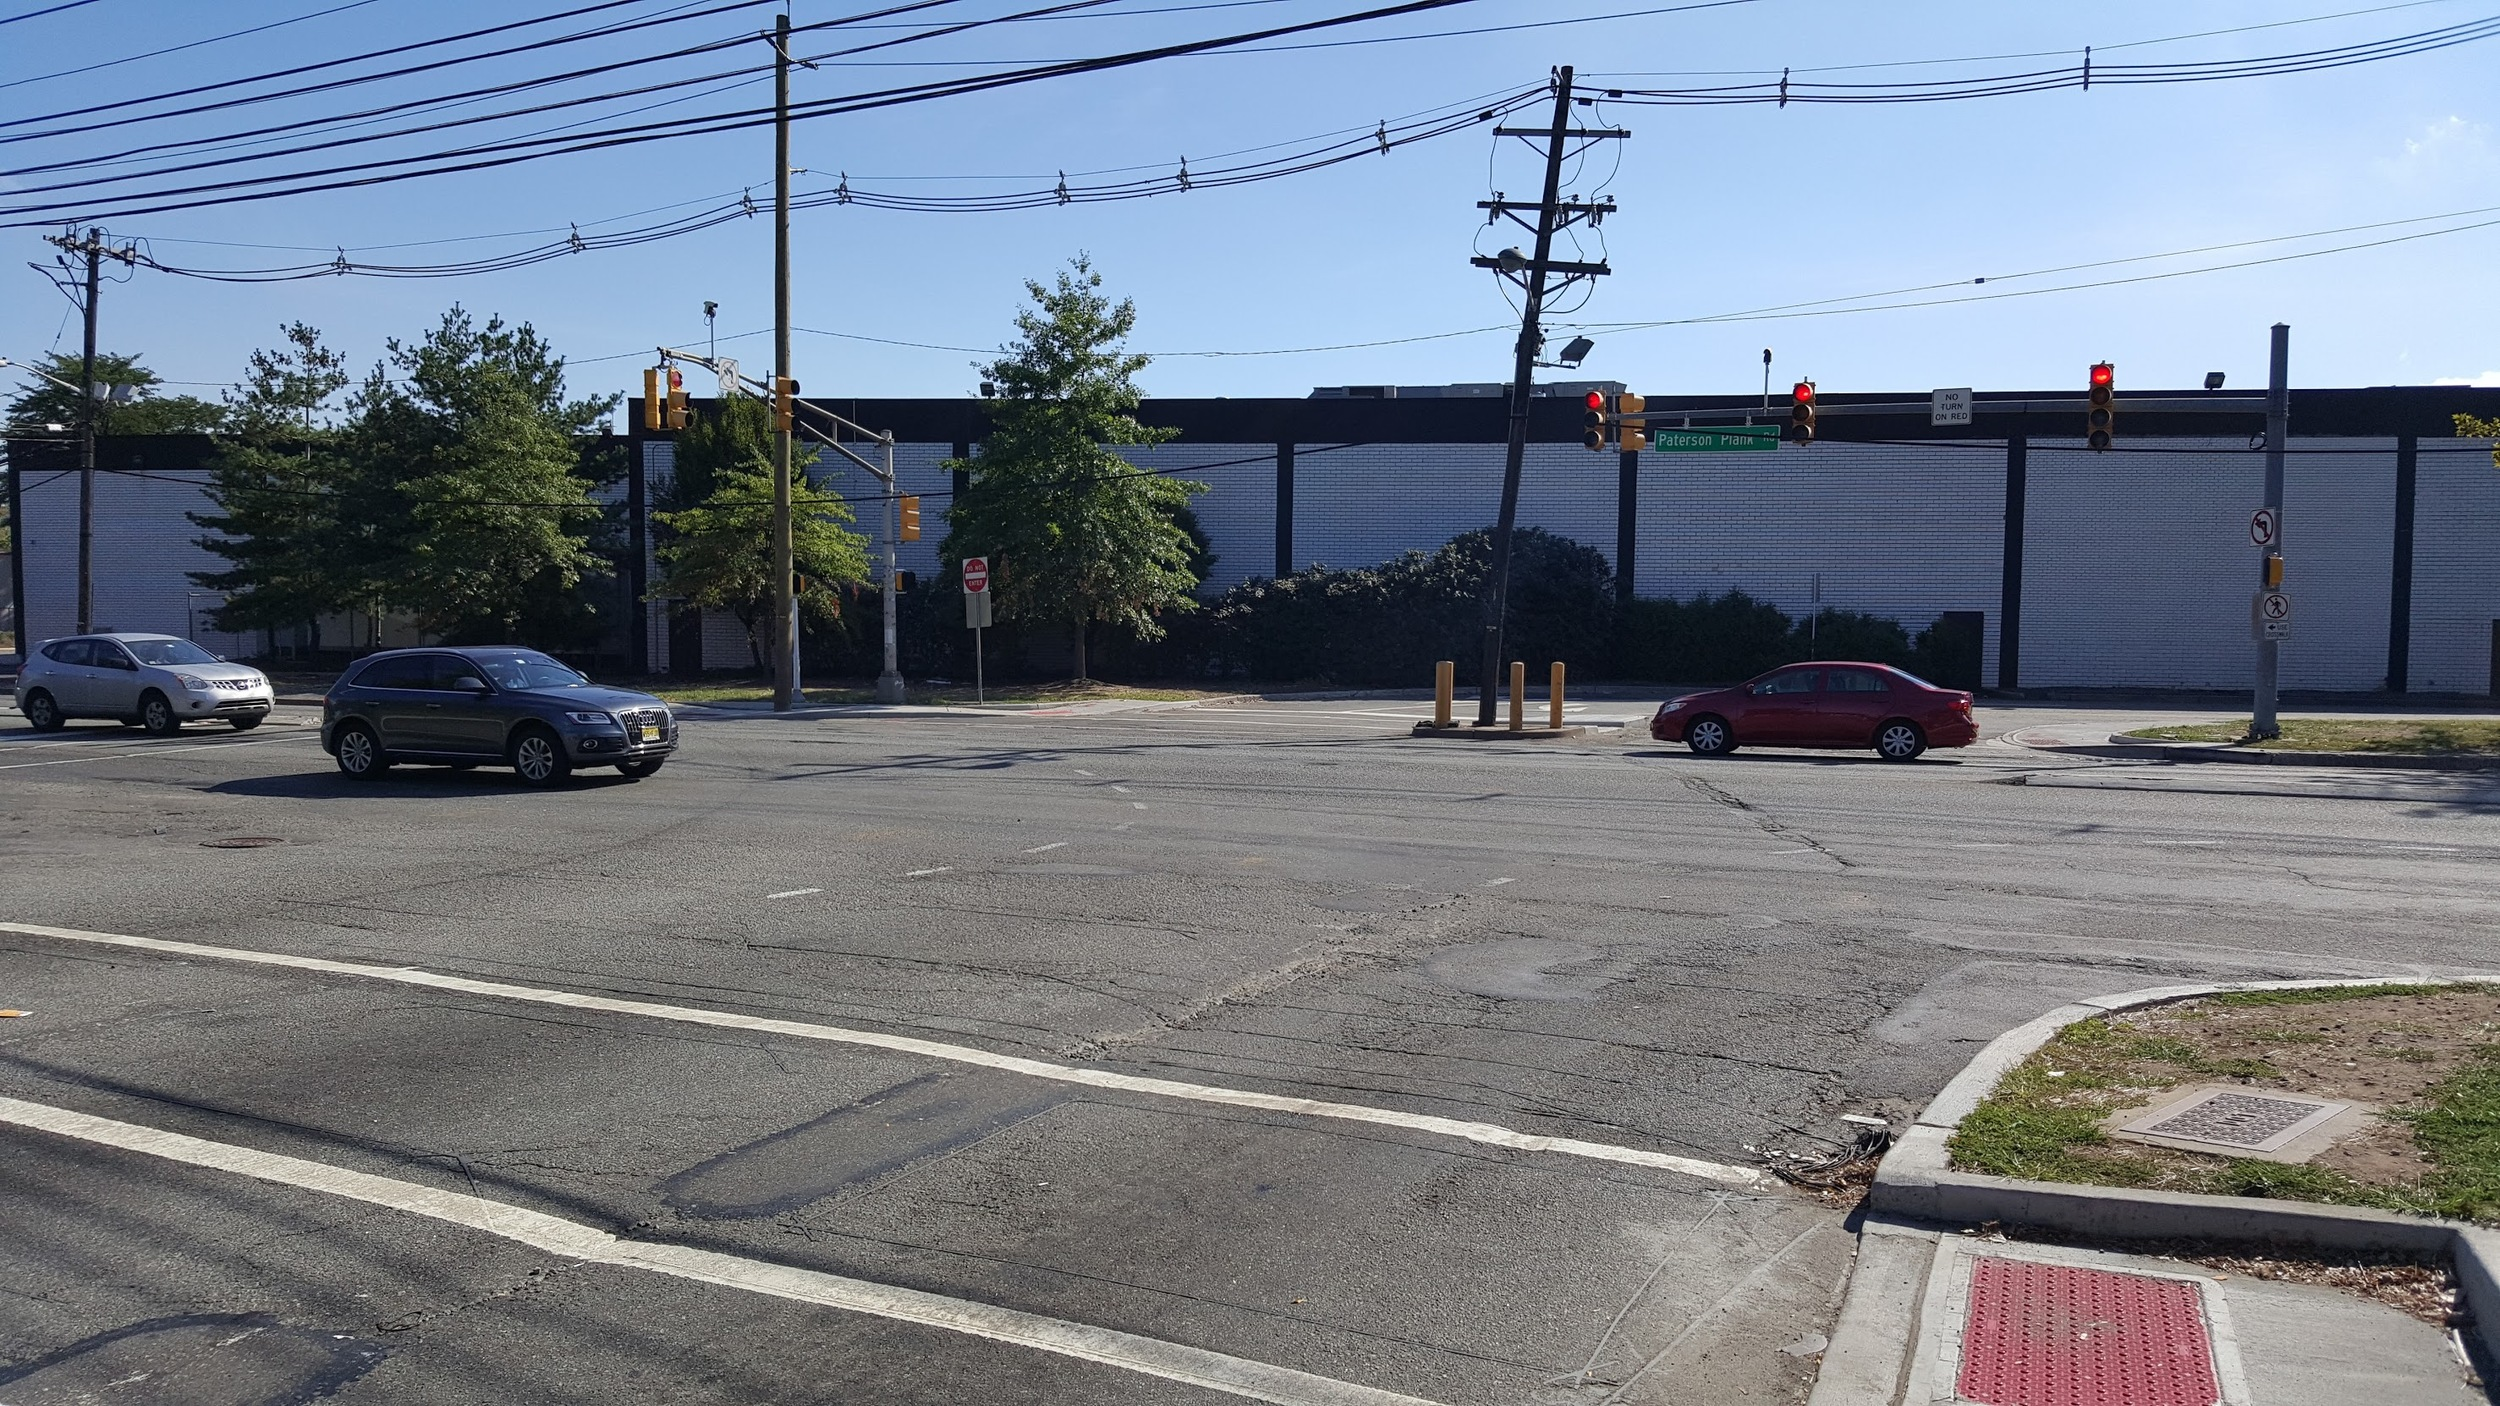 We tried to walk between multiple furniture stores, but encountered sidewalk dead-ends and cars flying past when the light goes green without expecting to see anybody crossing. It does not take much negative reinforcement punishing you until you decide to stick to the city.